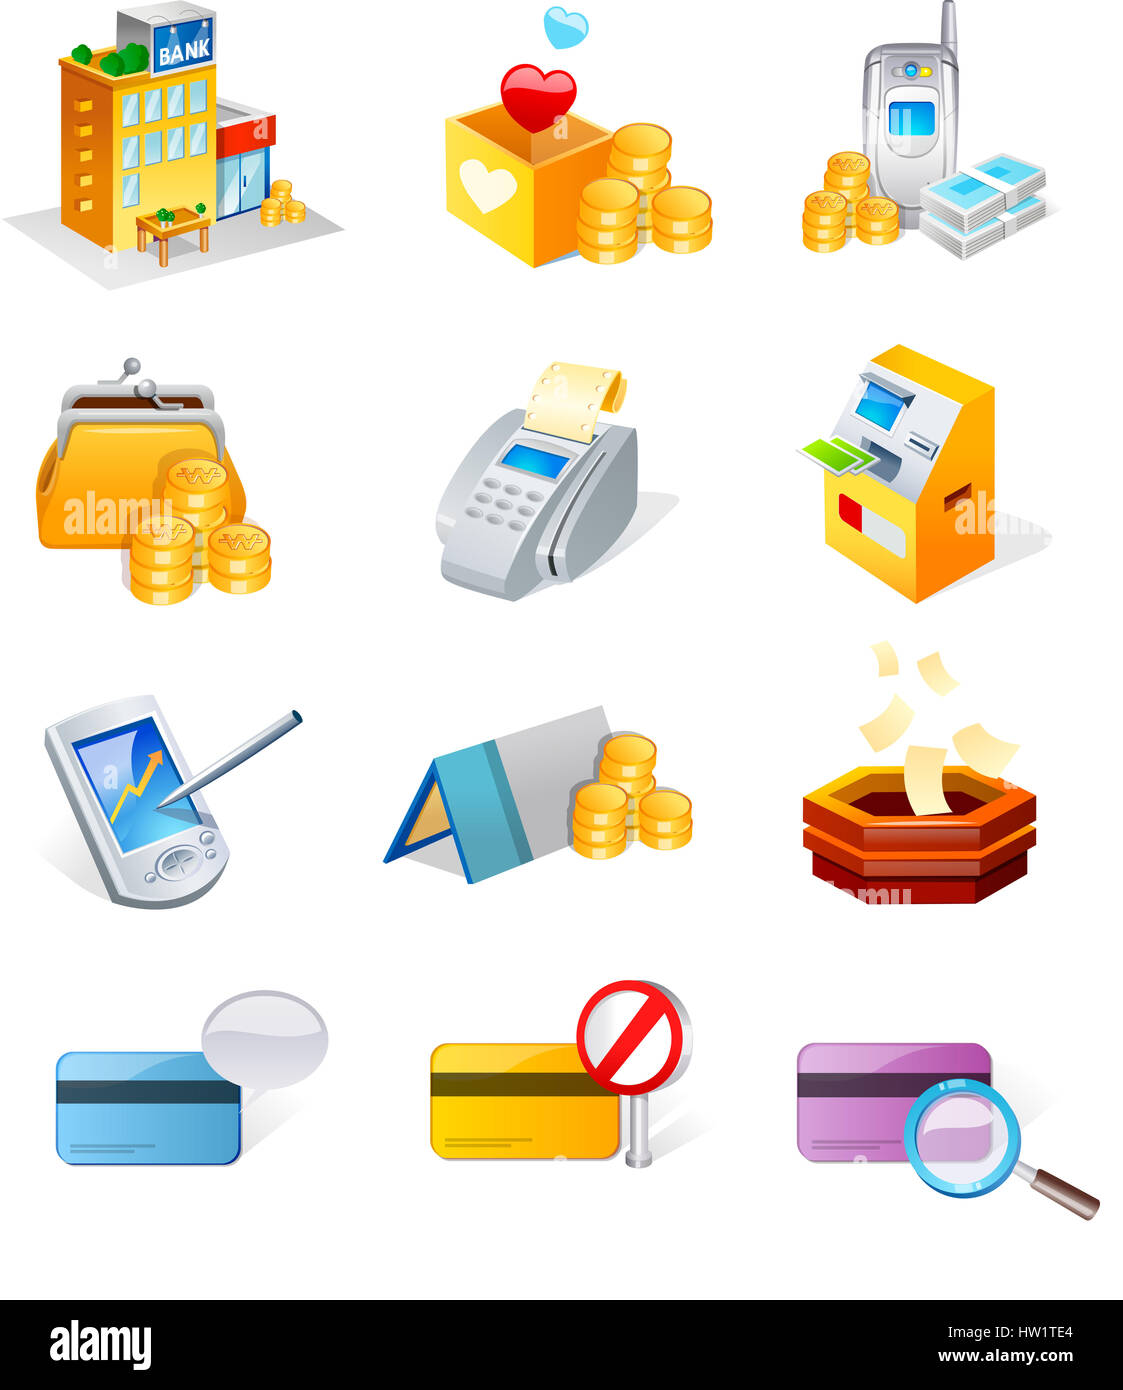 hight resolution of adding machine tape atm bank bank book box clip art clipart coin color colour color image communication computer graphics computer icon connection credit